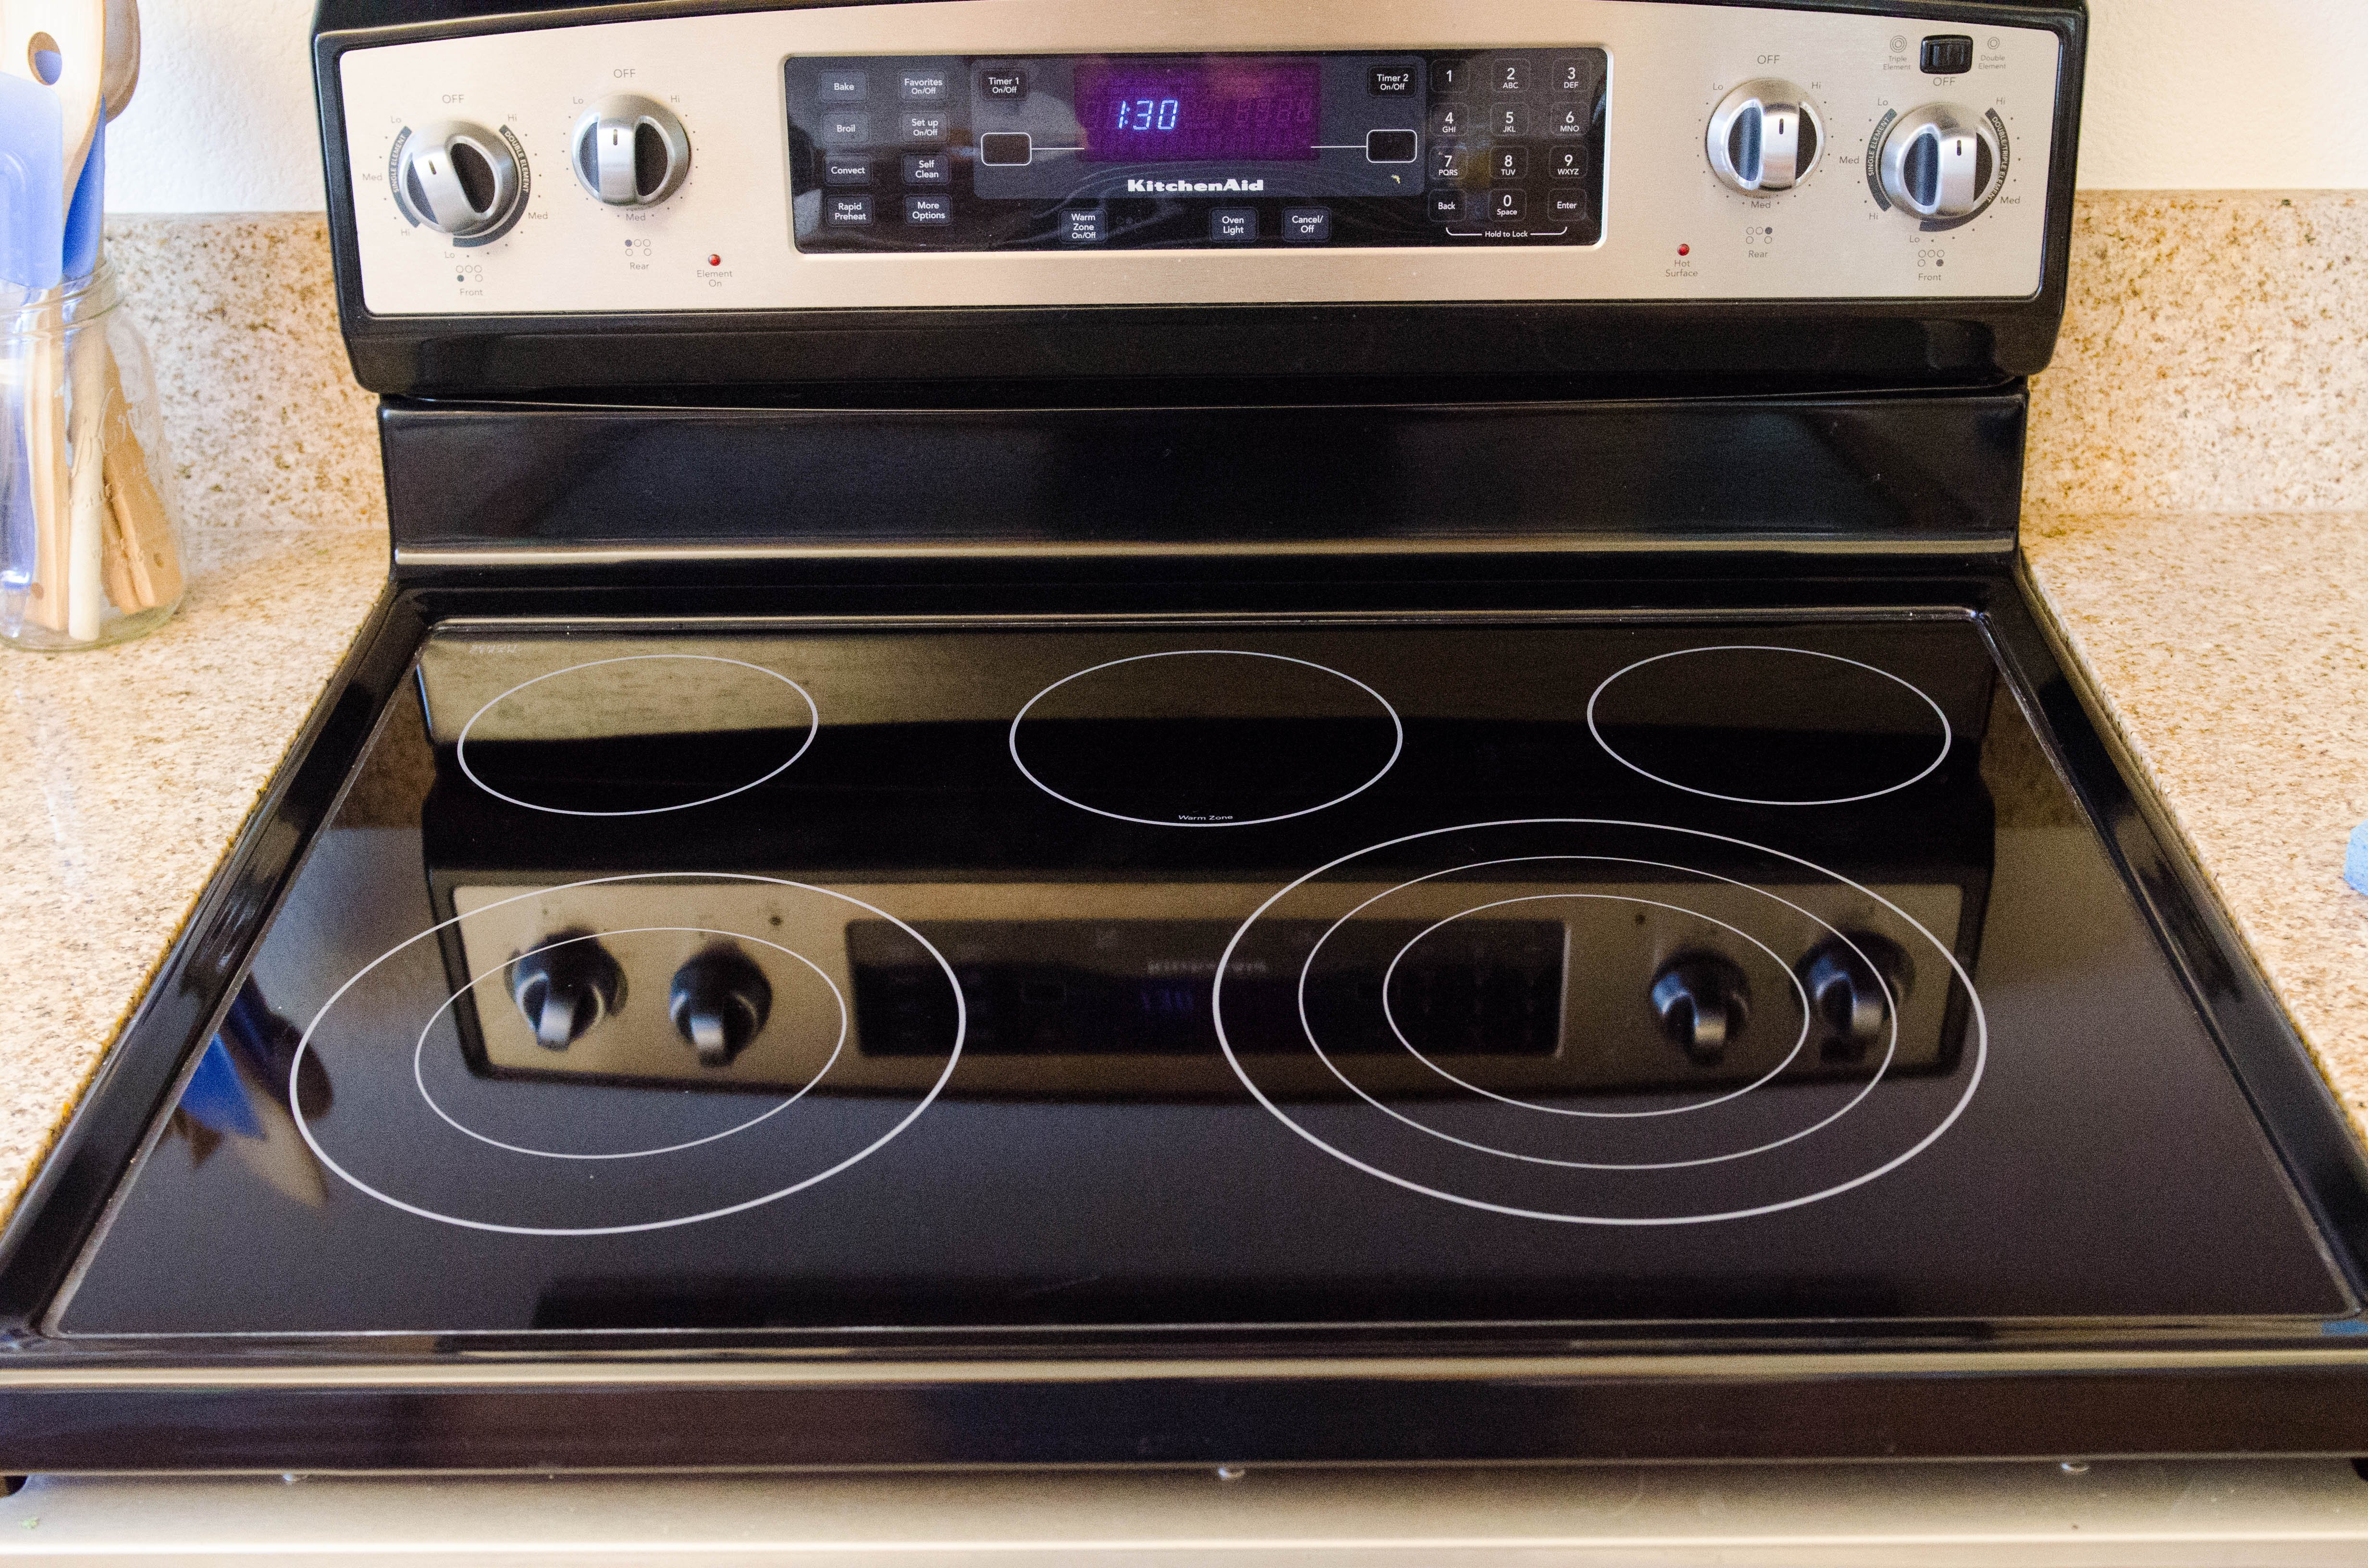 WHAT CAN I USE TO CLEAN MY ELECTRIC STOVE TOP